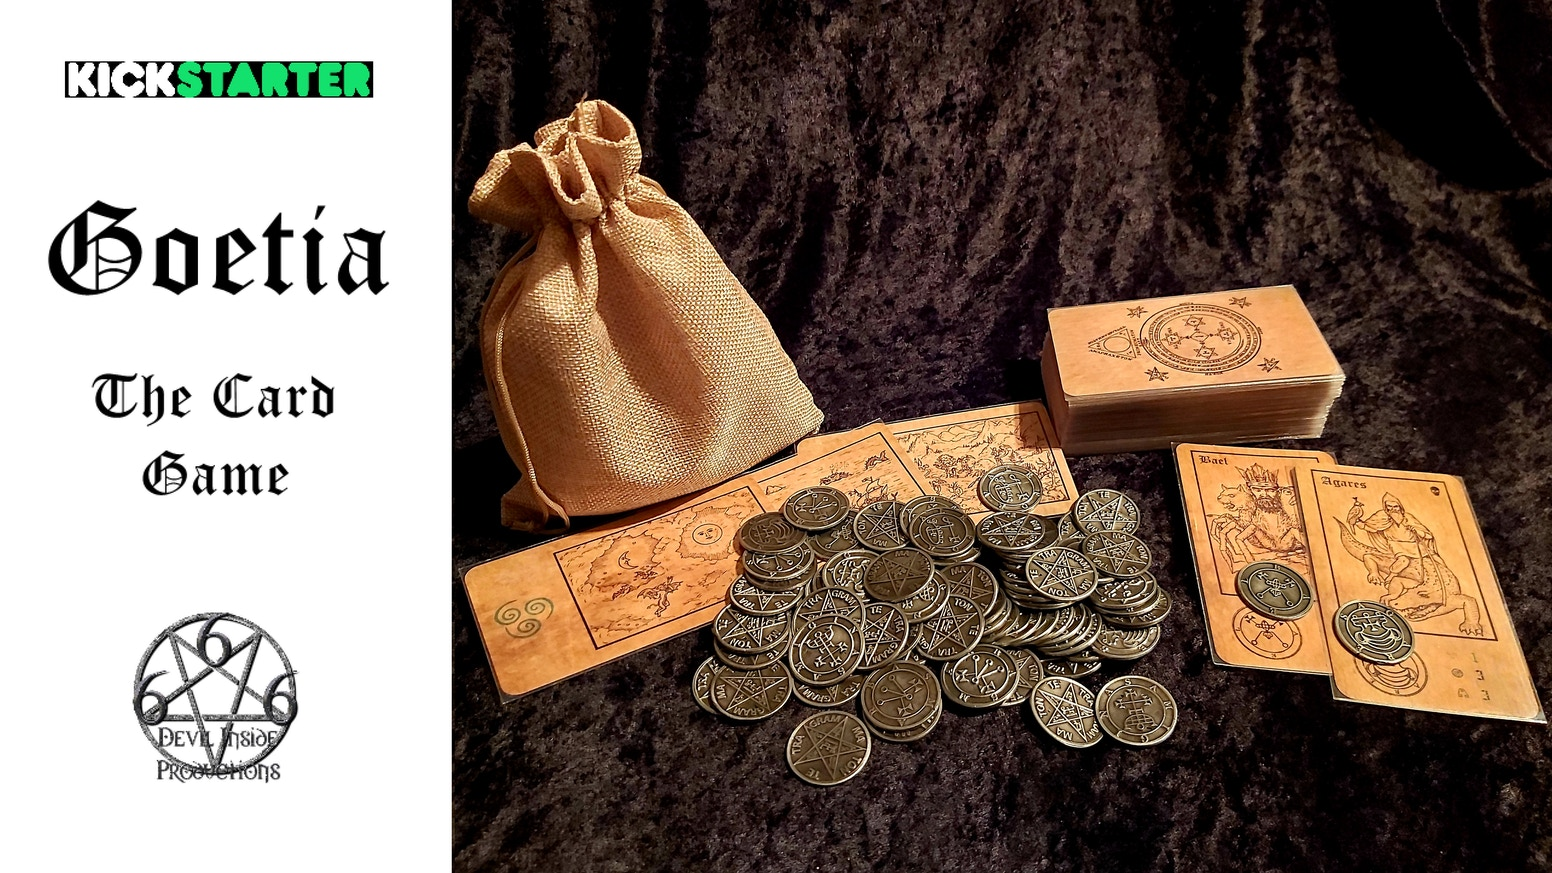 Lesser Key of Solomon Ars Goetia themed Card game with full set of hand finished double-sided metal Demon Seal coins + more included.